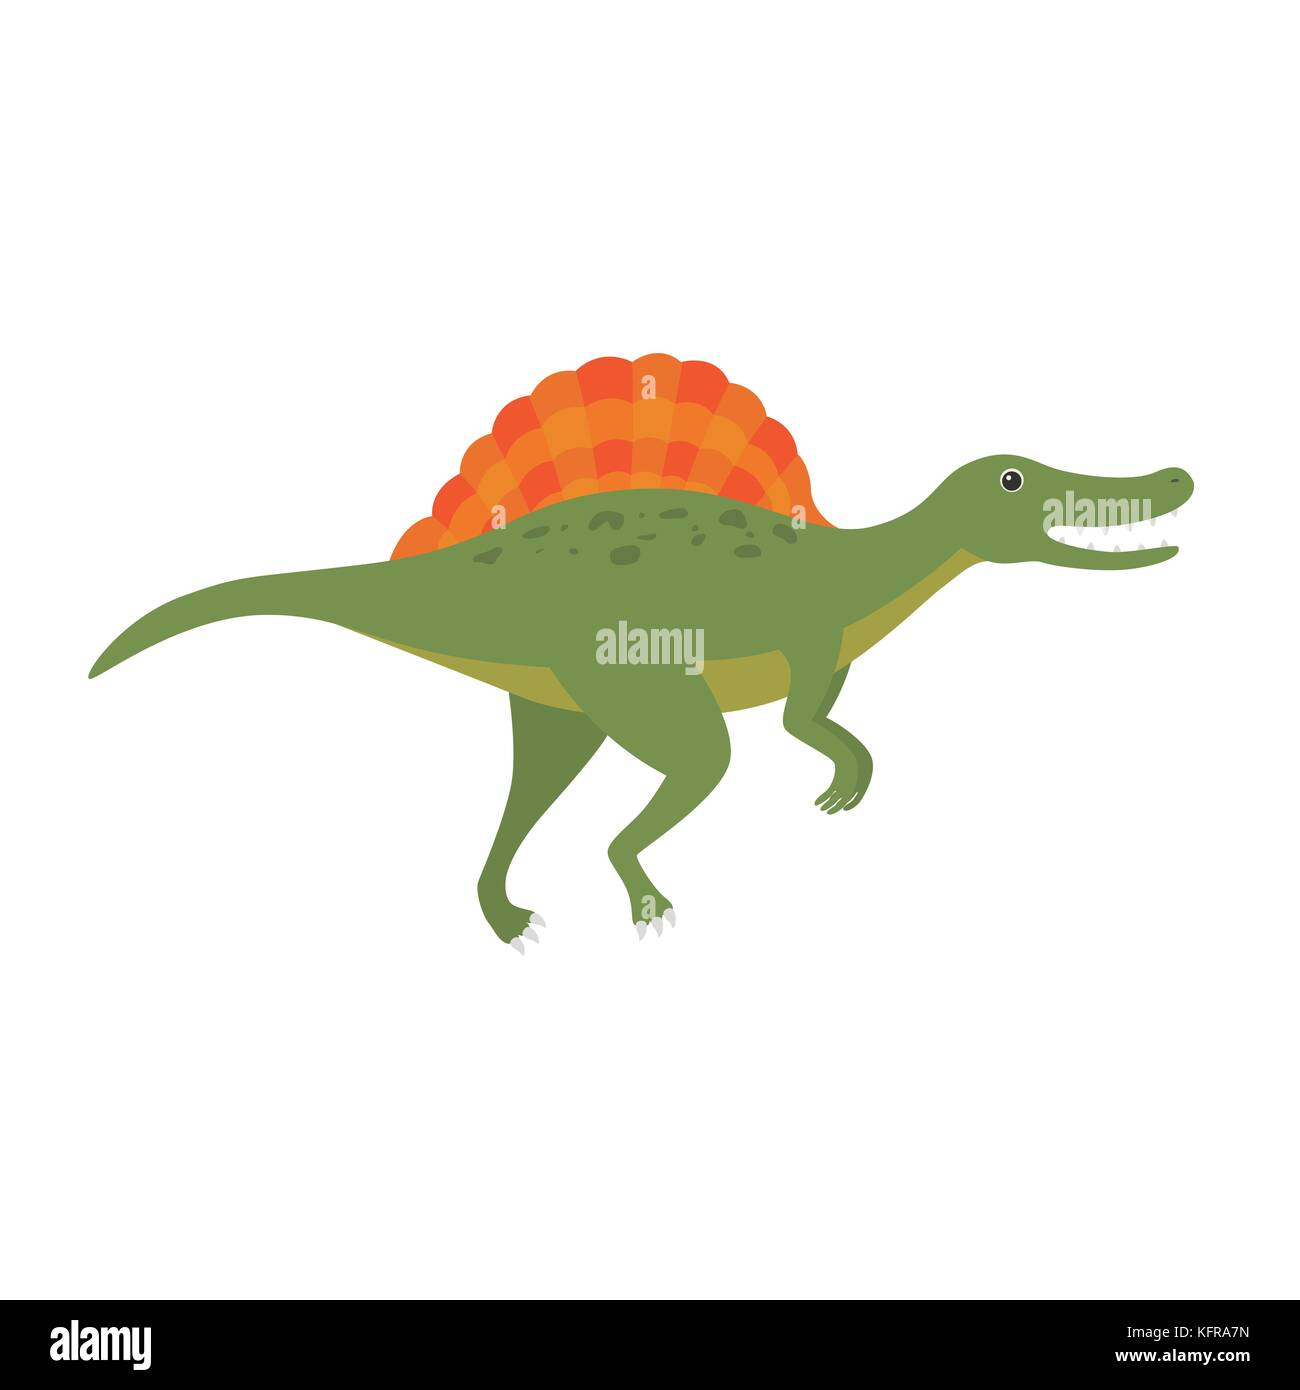 Vector flat style illustration of prehistoric animal - spinosaurus. - Stock Image